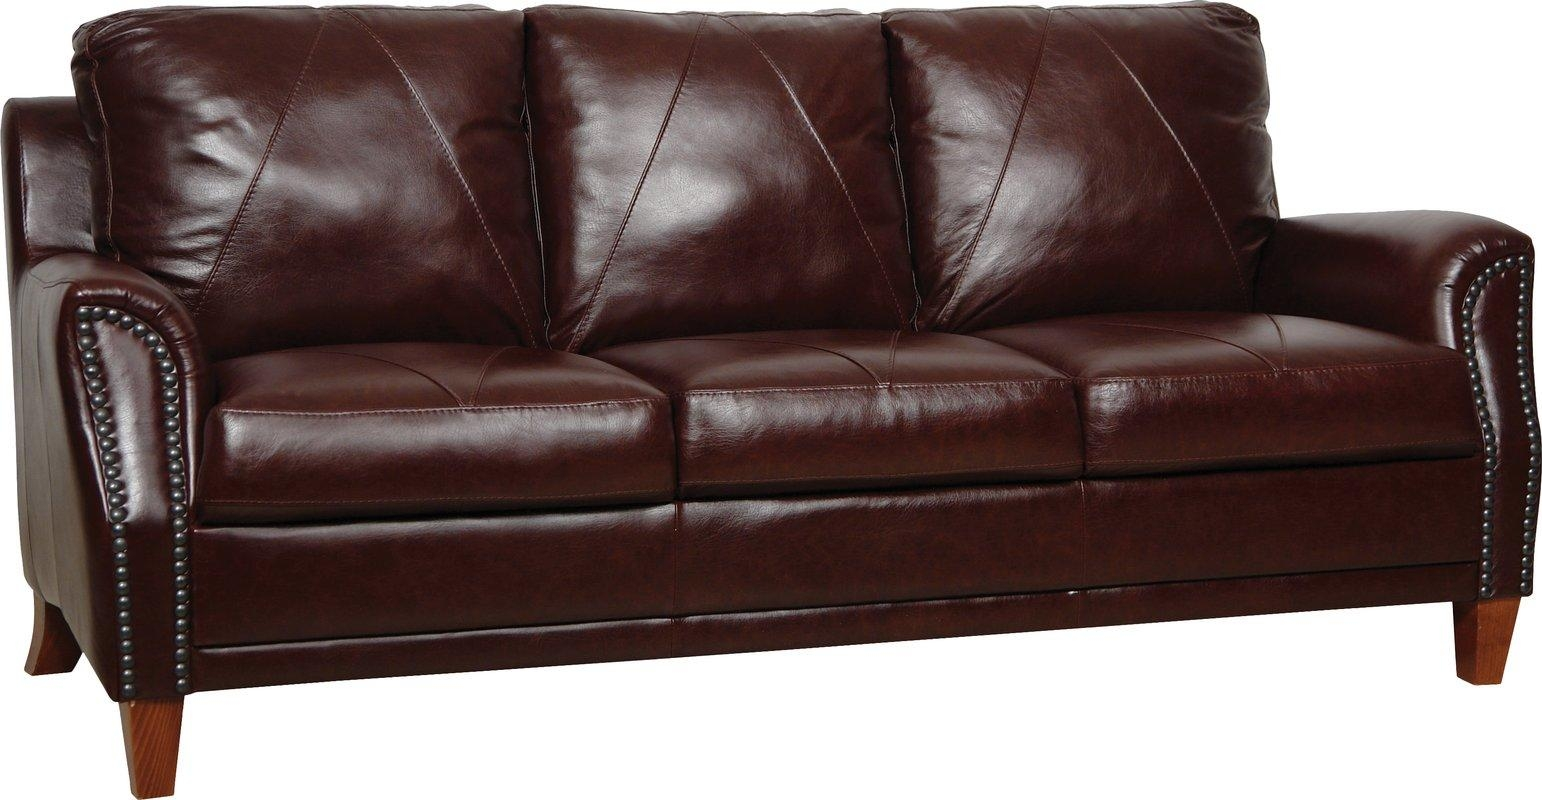 Luke Leather Austin Leather Sofa & Reviews | Wayfair For Brown Leather Sofas With Nailhead Trim (Image 13 of 20)